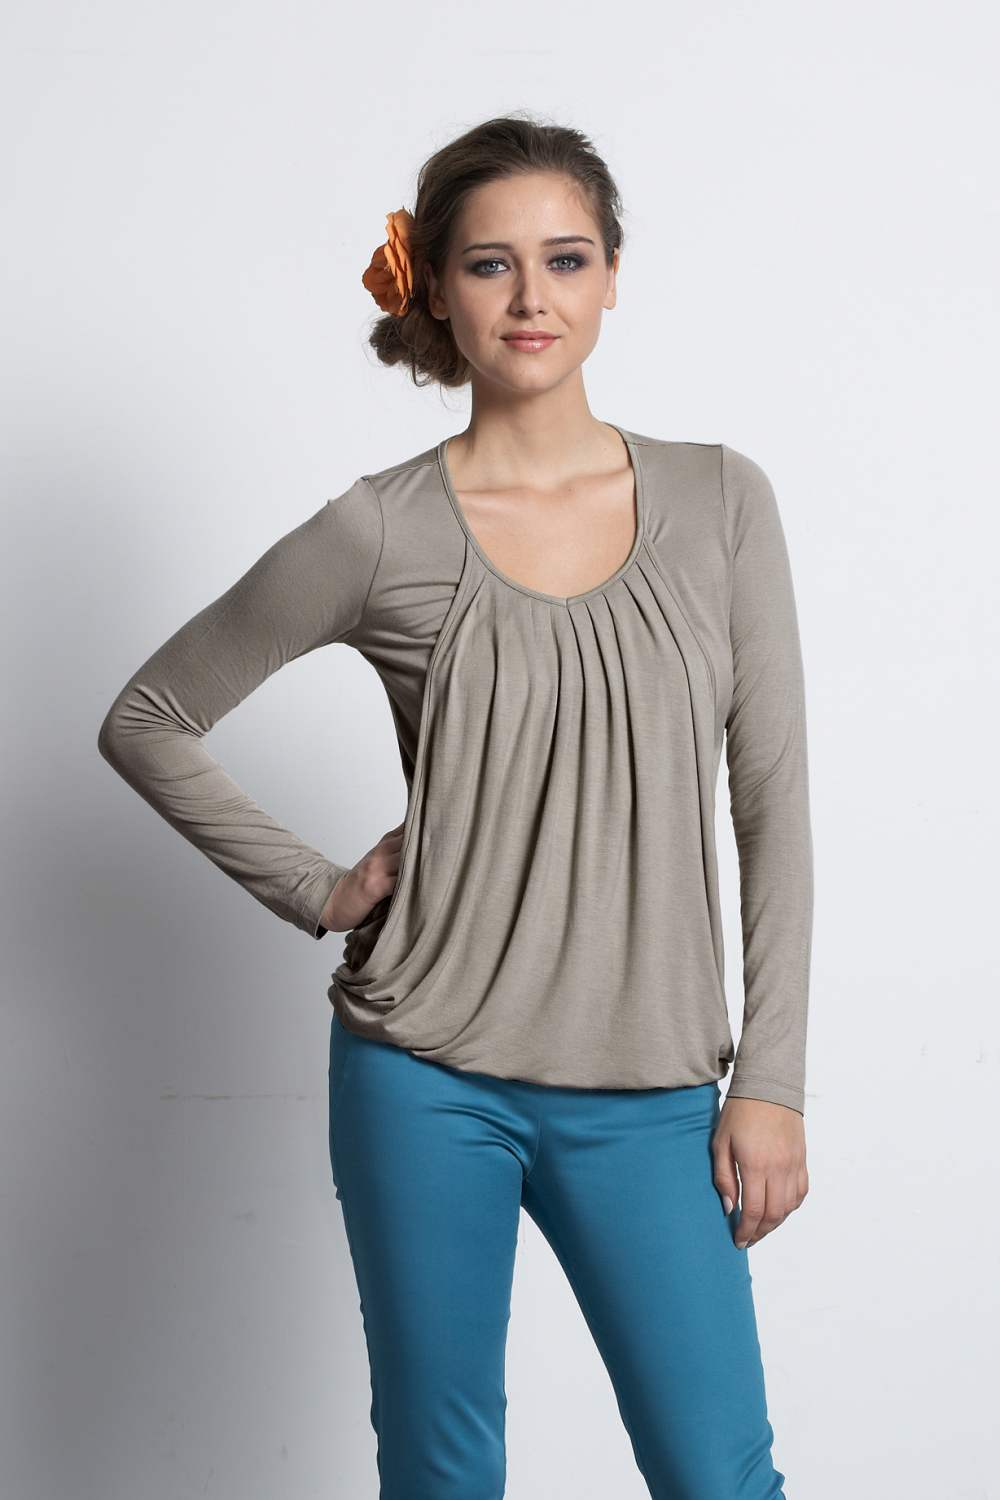 Chic and comfortable nursing tops